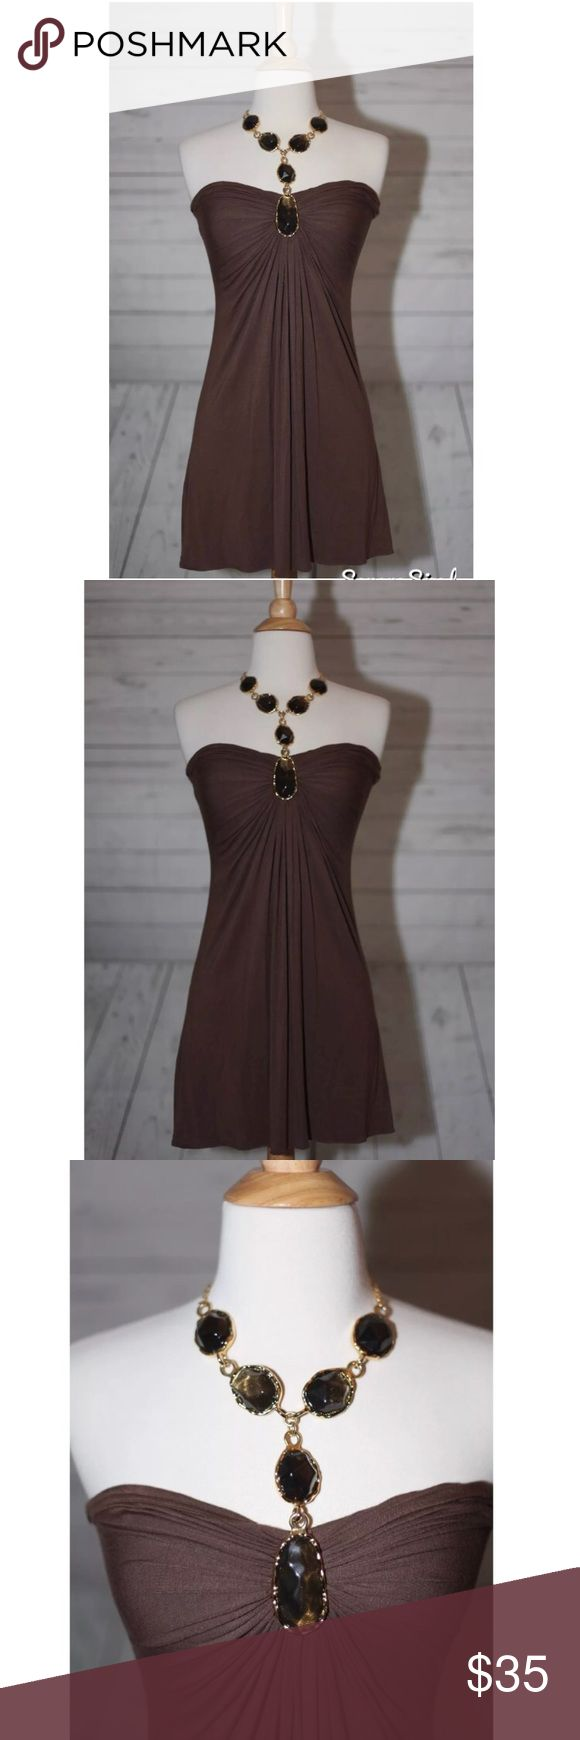 """SKY Sz S, Small """"Stone"""" Halter Brown Mini Dress SKY Sz S, Small """"Stone"""" Gold Chain Halter Brown Ruched Mini Dress  Measurements -  Bust: 13.5"""" (measured armpit to armpit flat across front laying flat down)  Length: 30"""" (mini)  Condition: Excellent! No stains, tears or snags. Sky Dresses Mini"""